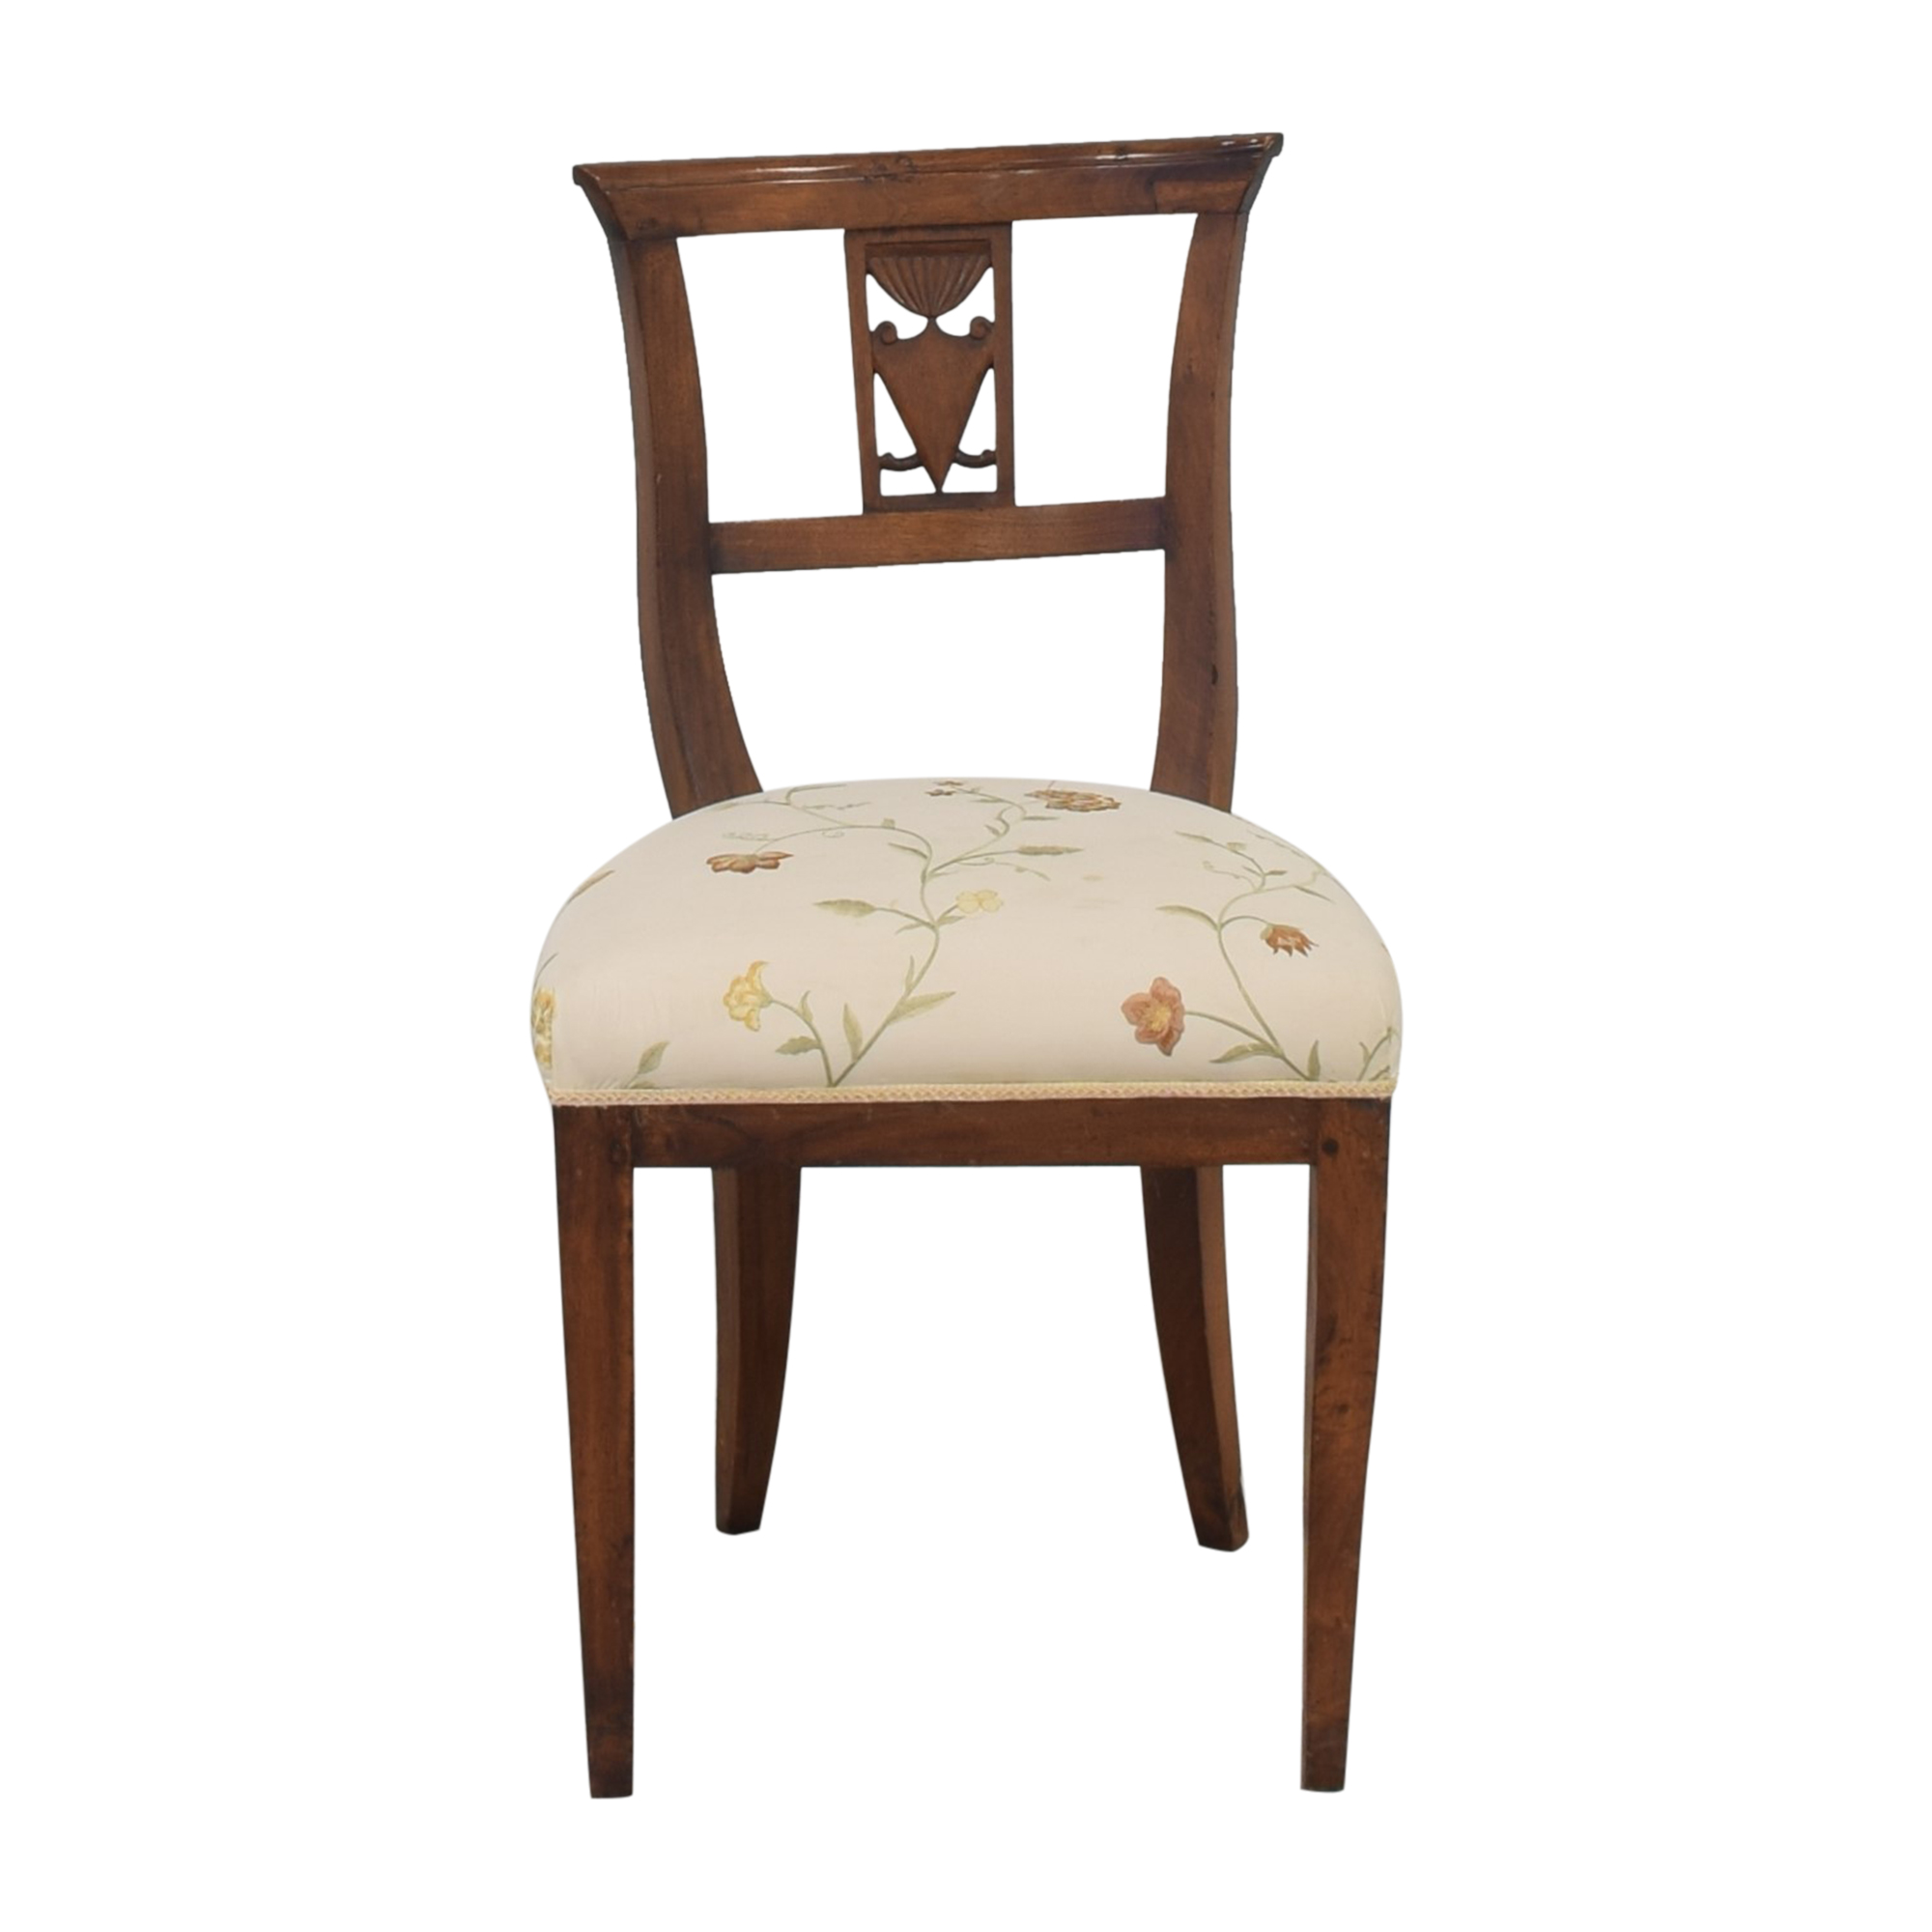 Vintage Upholstered Chair with Carving nyc